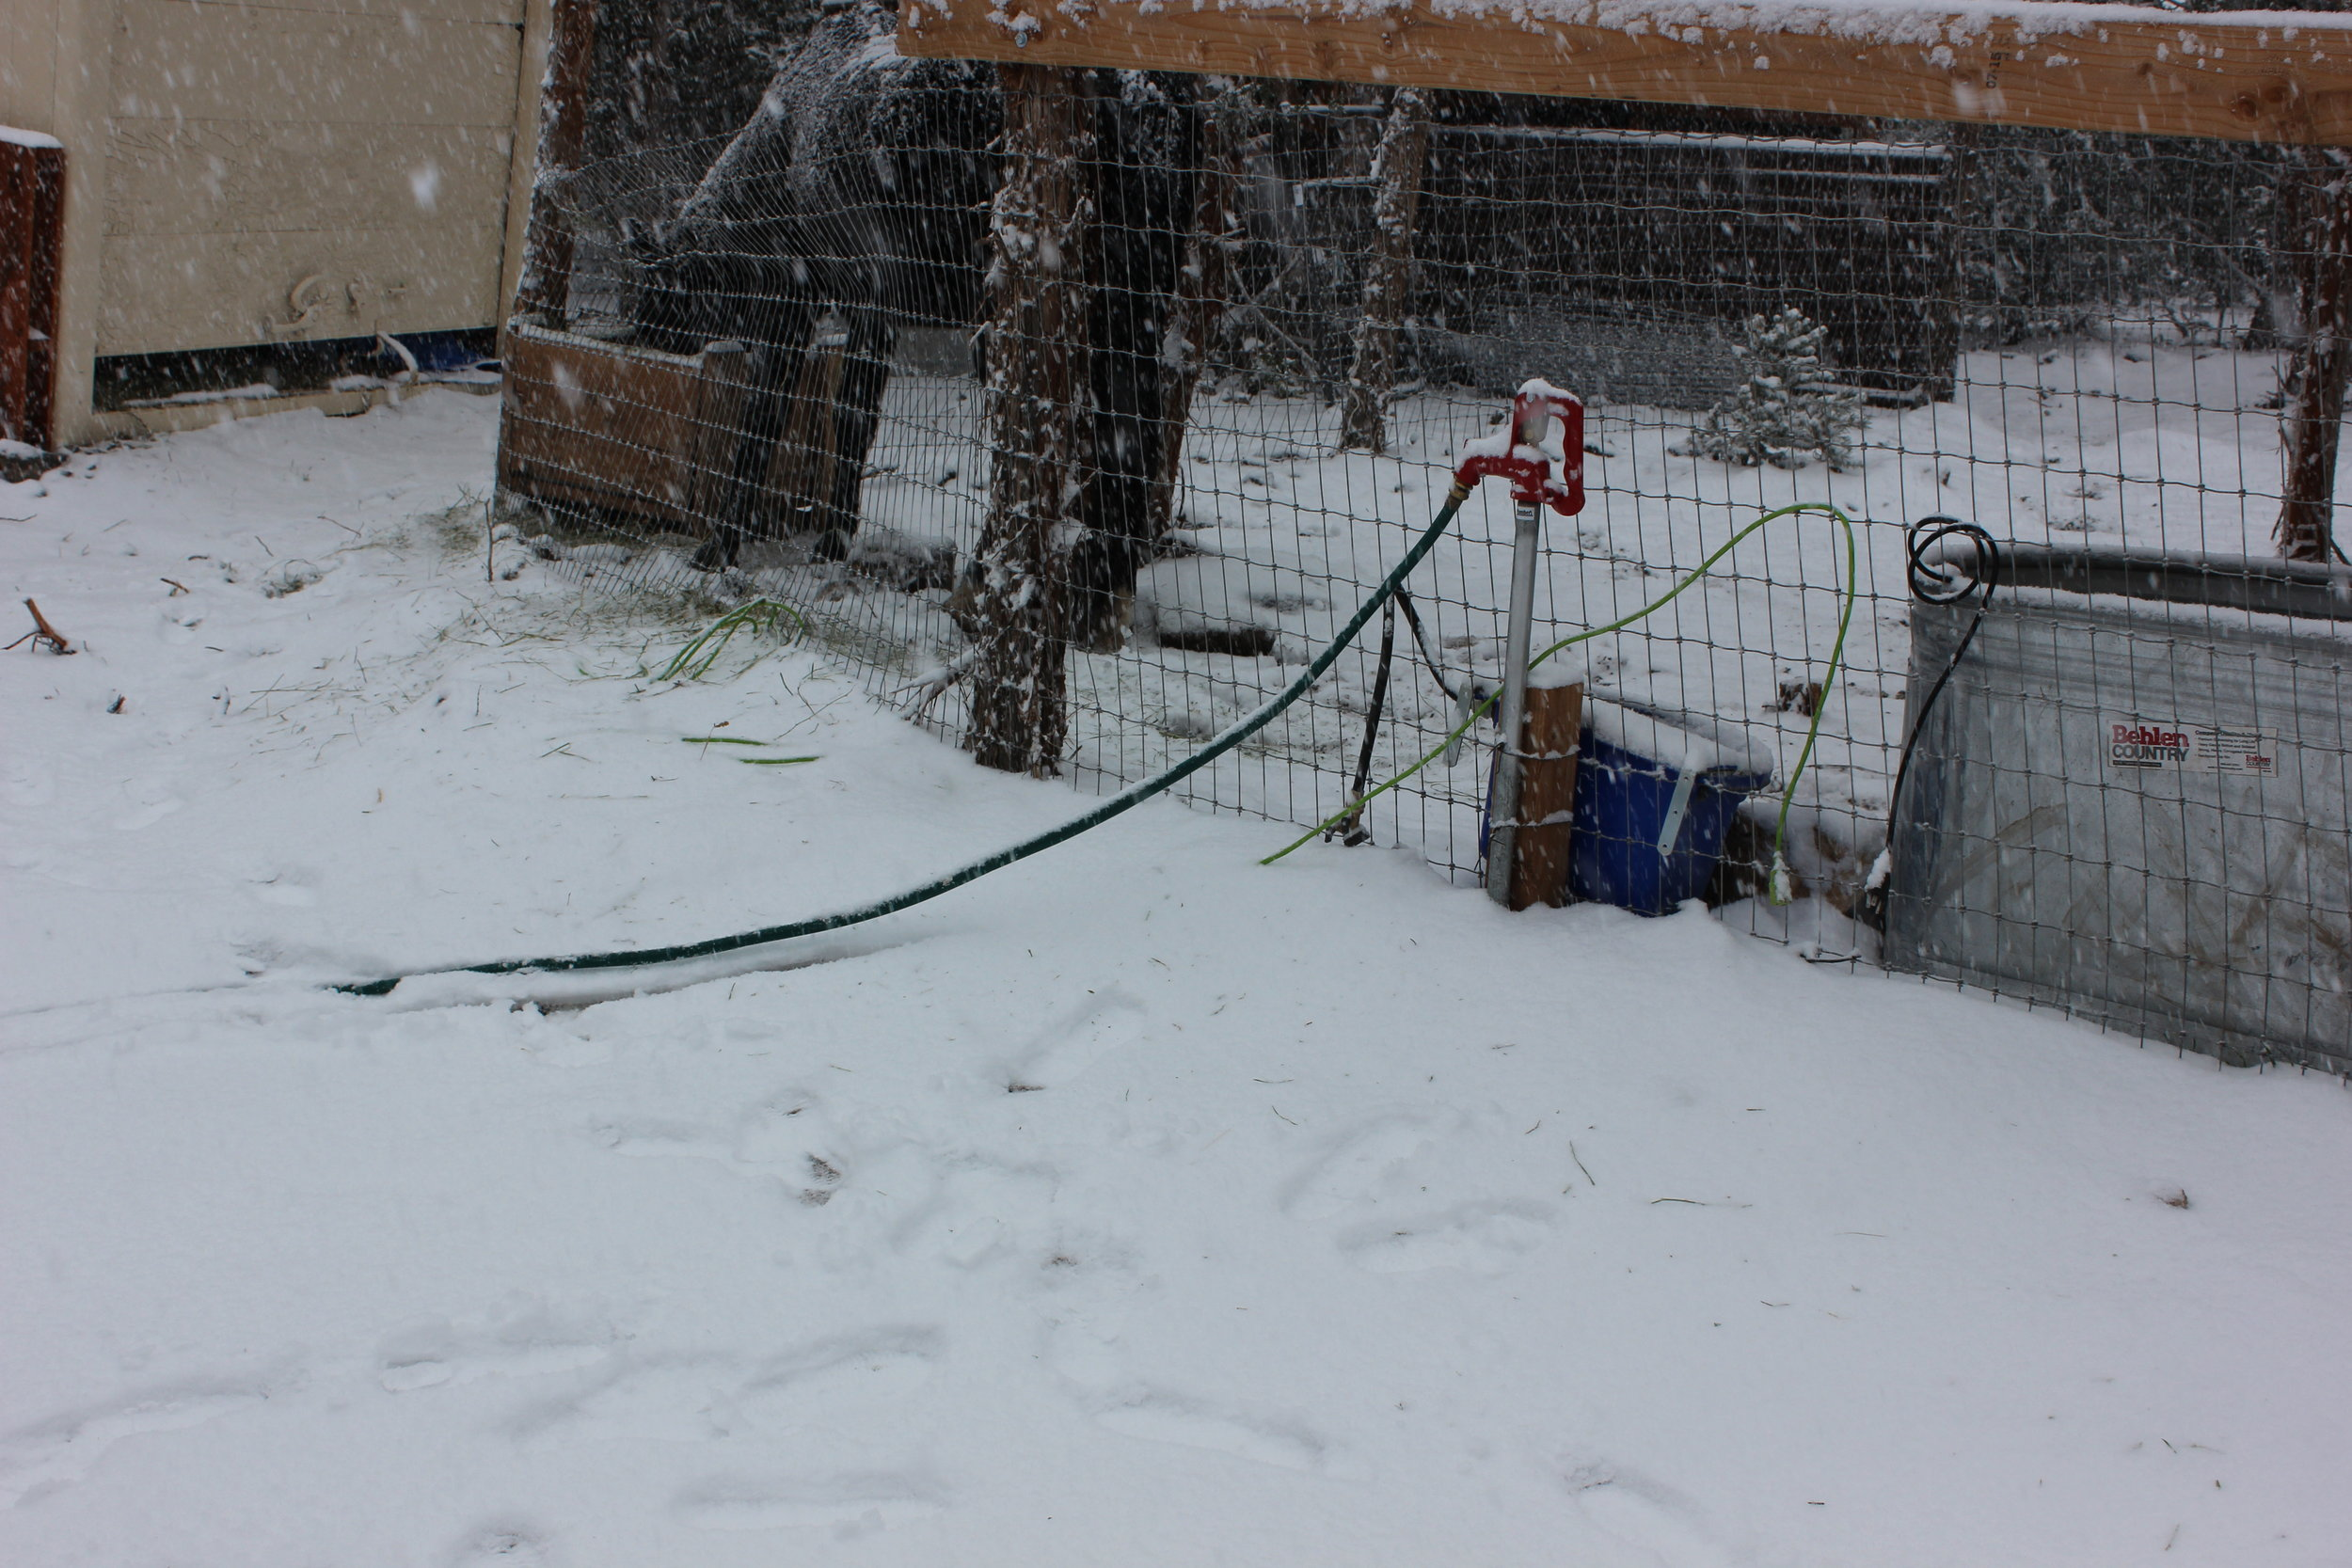 The water spigots freeze if we leave them open.  So here's how we handle that problem and always have running water:  We leave the handle down and make sure the hose (which we cut short--about 6 feet) is running down hill after using it.  That way, there is no water in the line to freeze.  When we lift the handle---there's our water! We only get into the single digits here so far, so I'm not sure how this system would work in a VERY cold place.